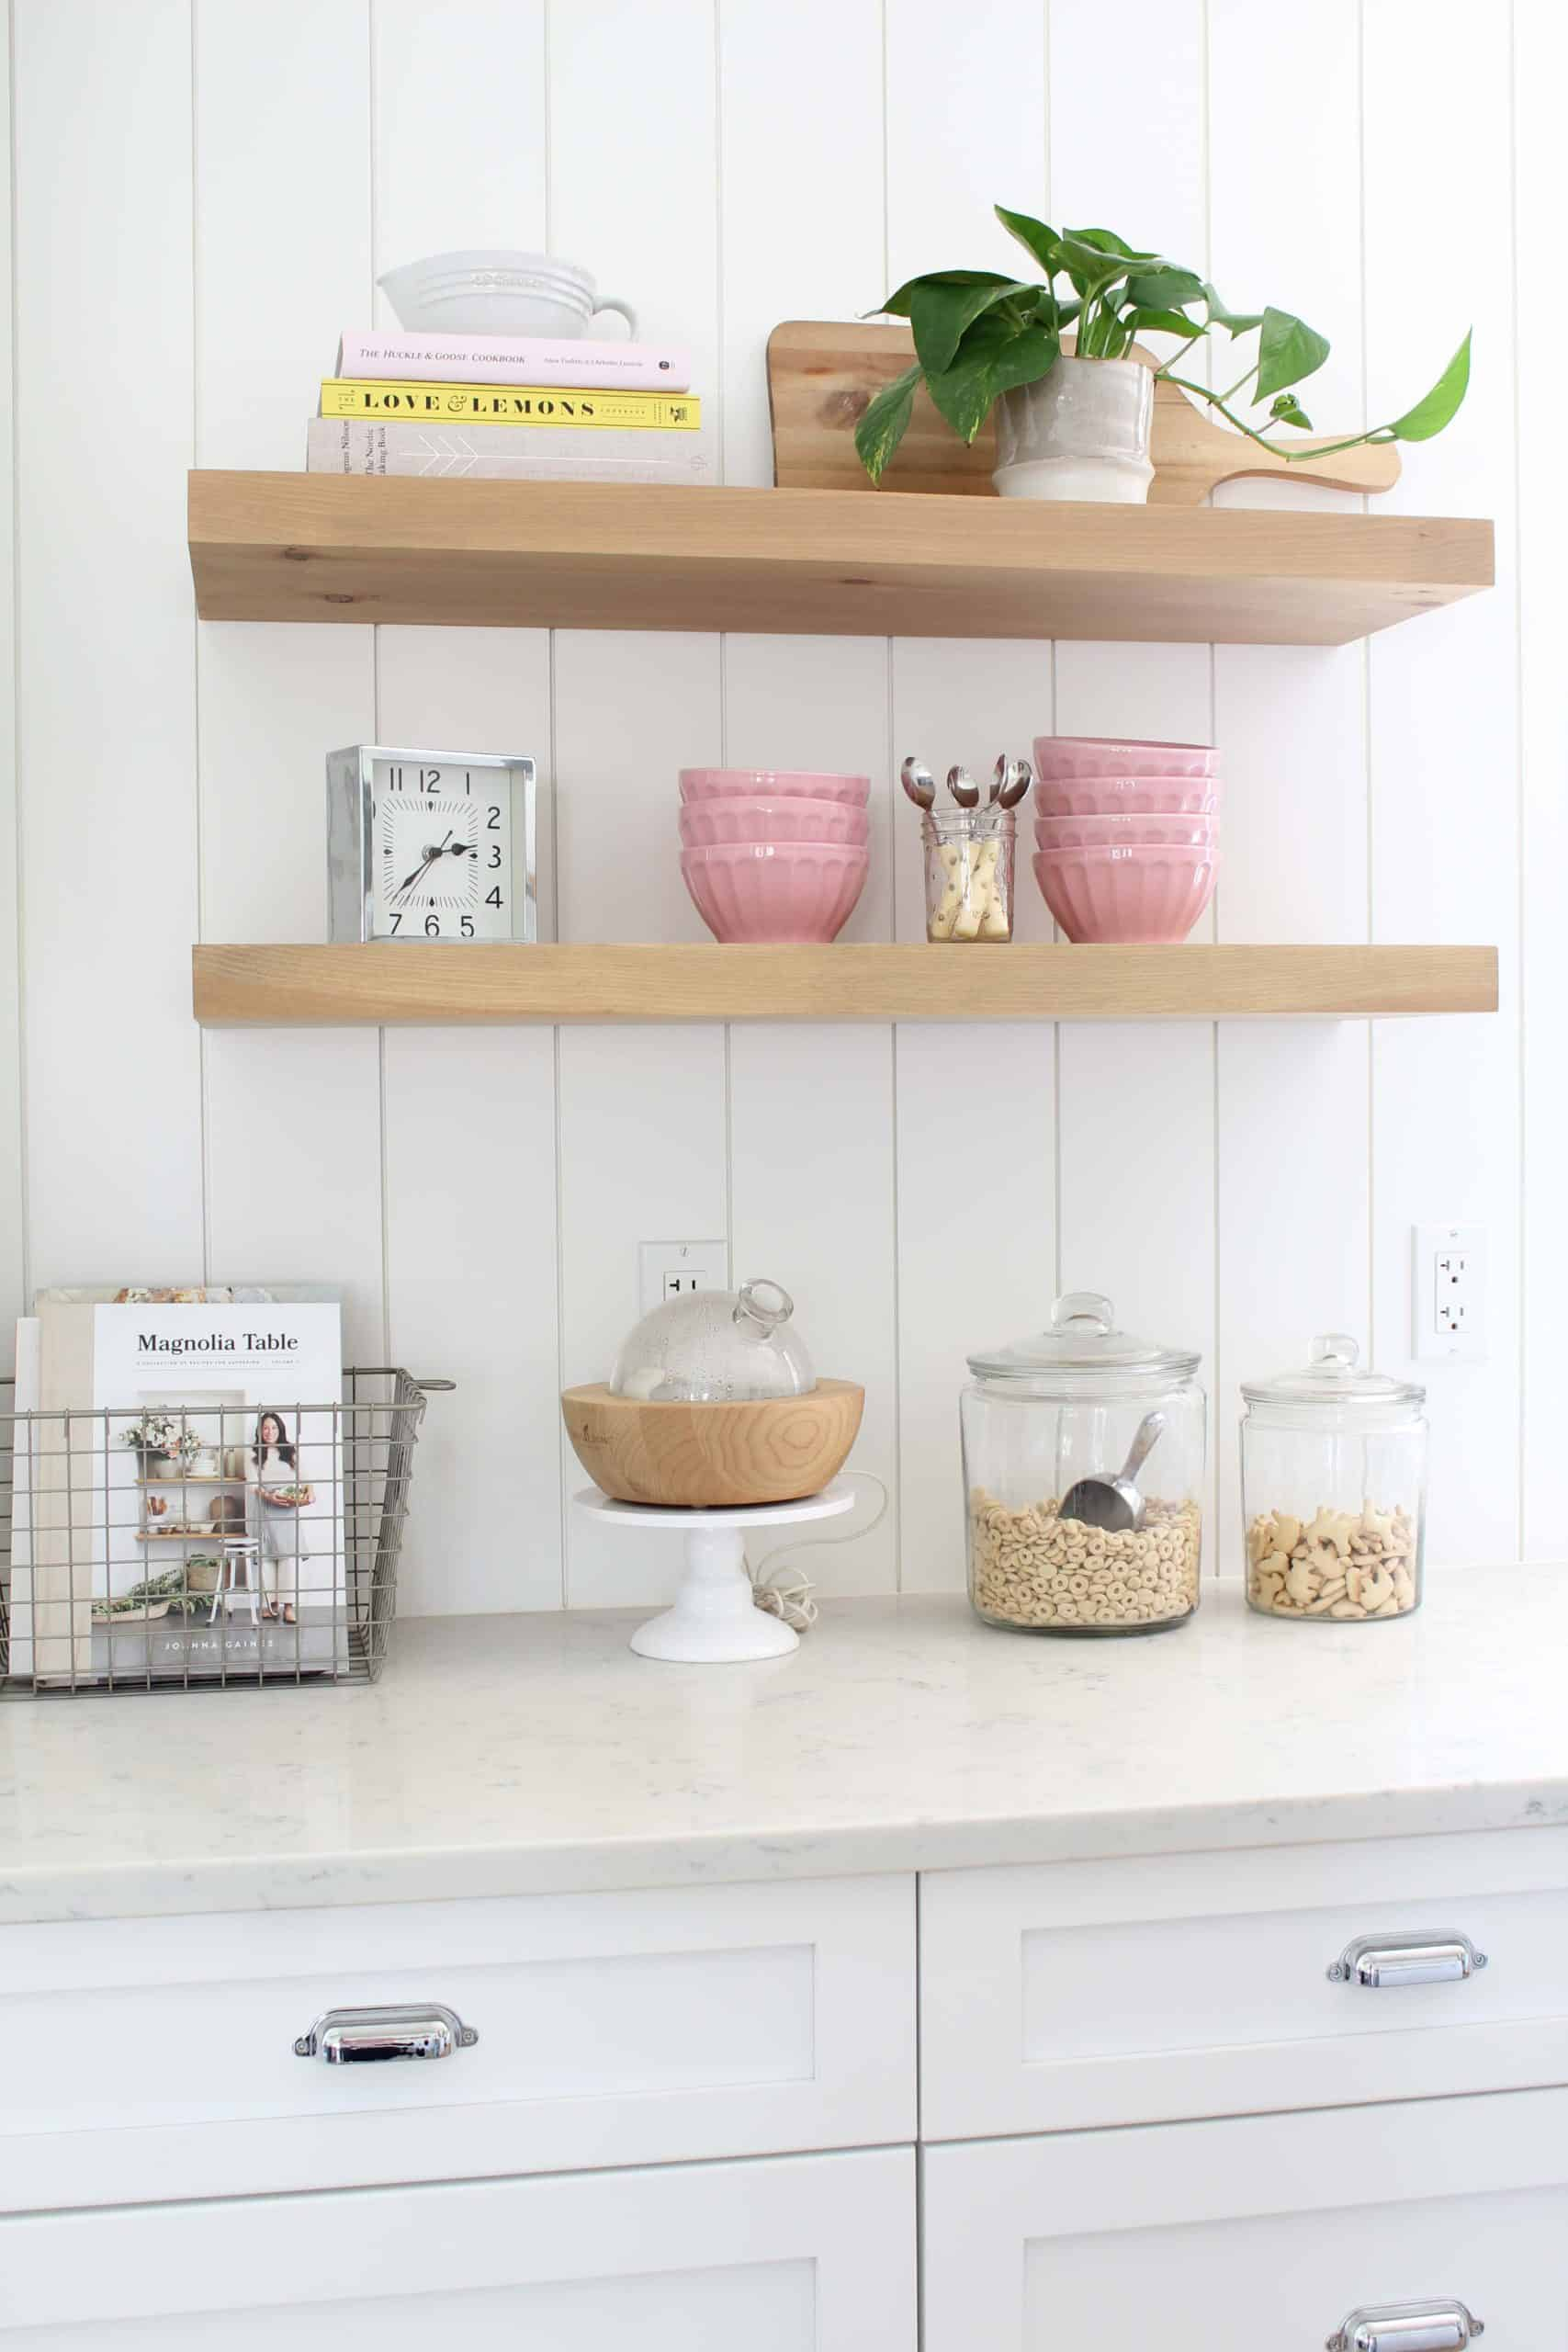 light wood open kitchen shelving, pink anthropologie bowls